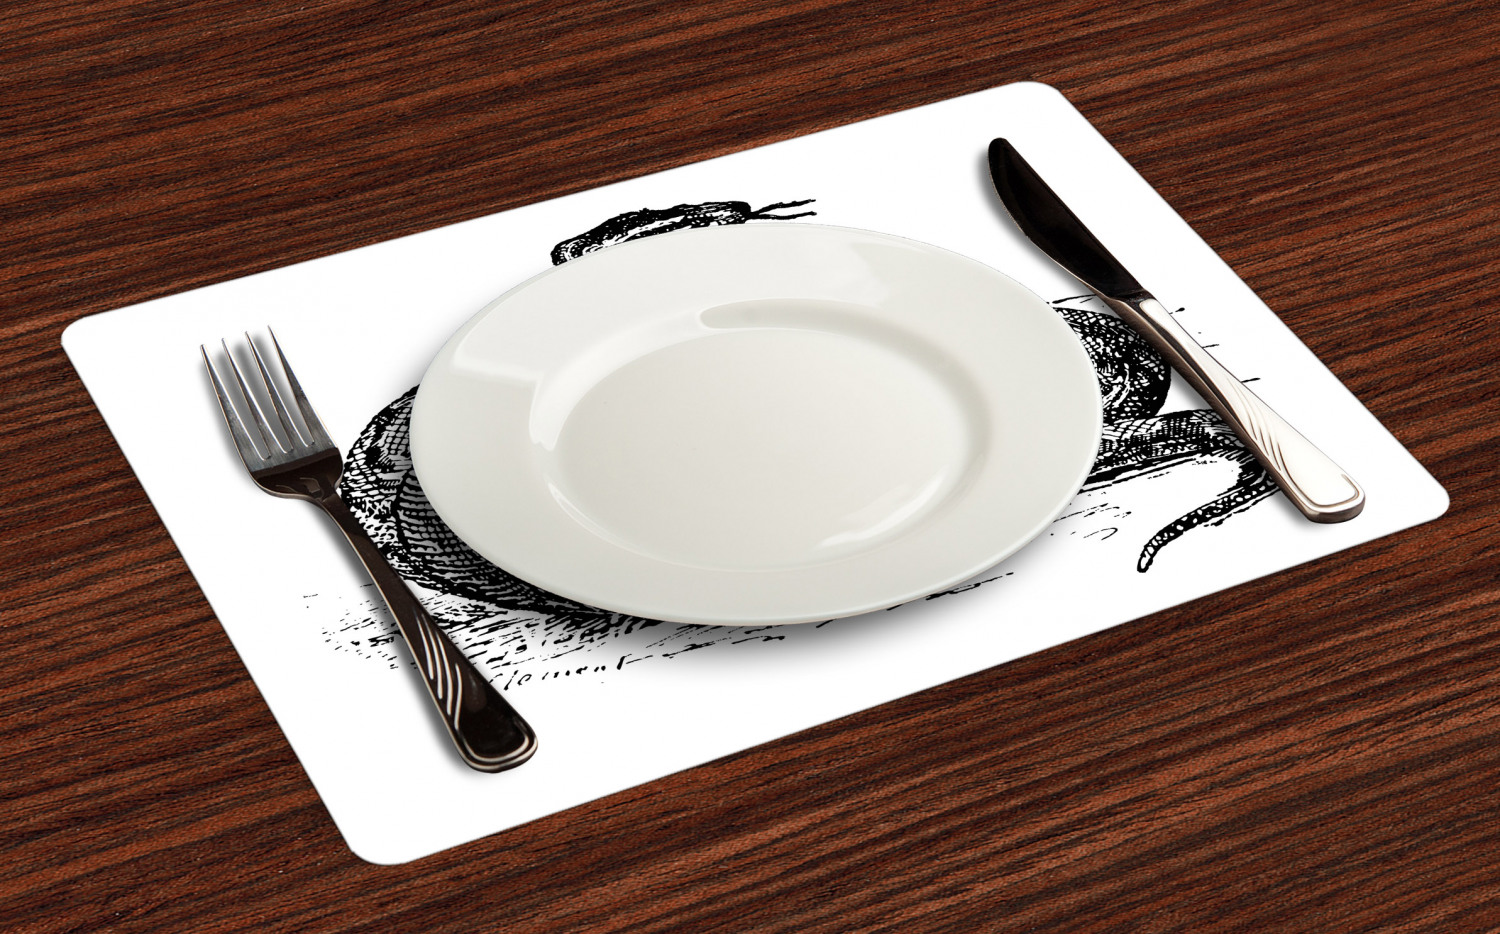 Ambesonne-Fabric-Place-Mats-Set-of-4-Placemats-for-Dining-Room-and-Kitchen-Table thumbnail 69